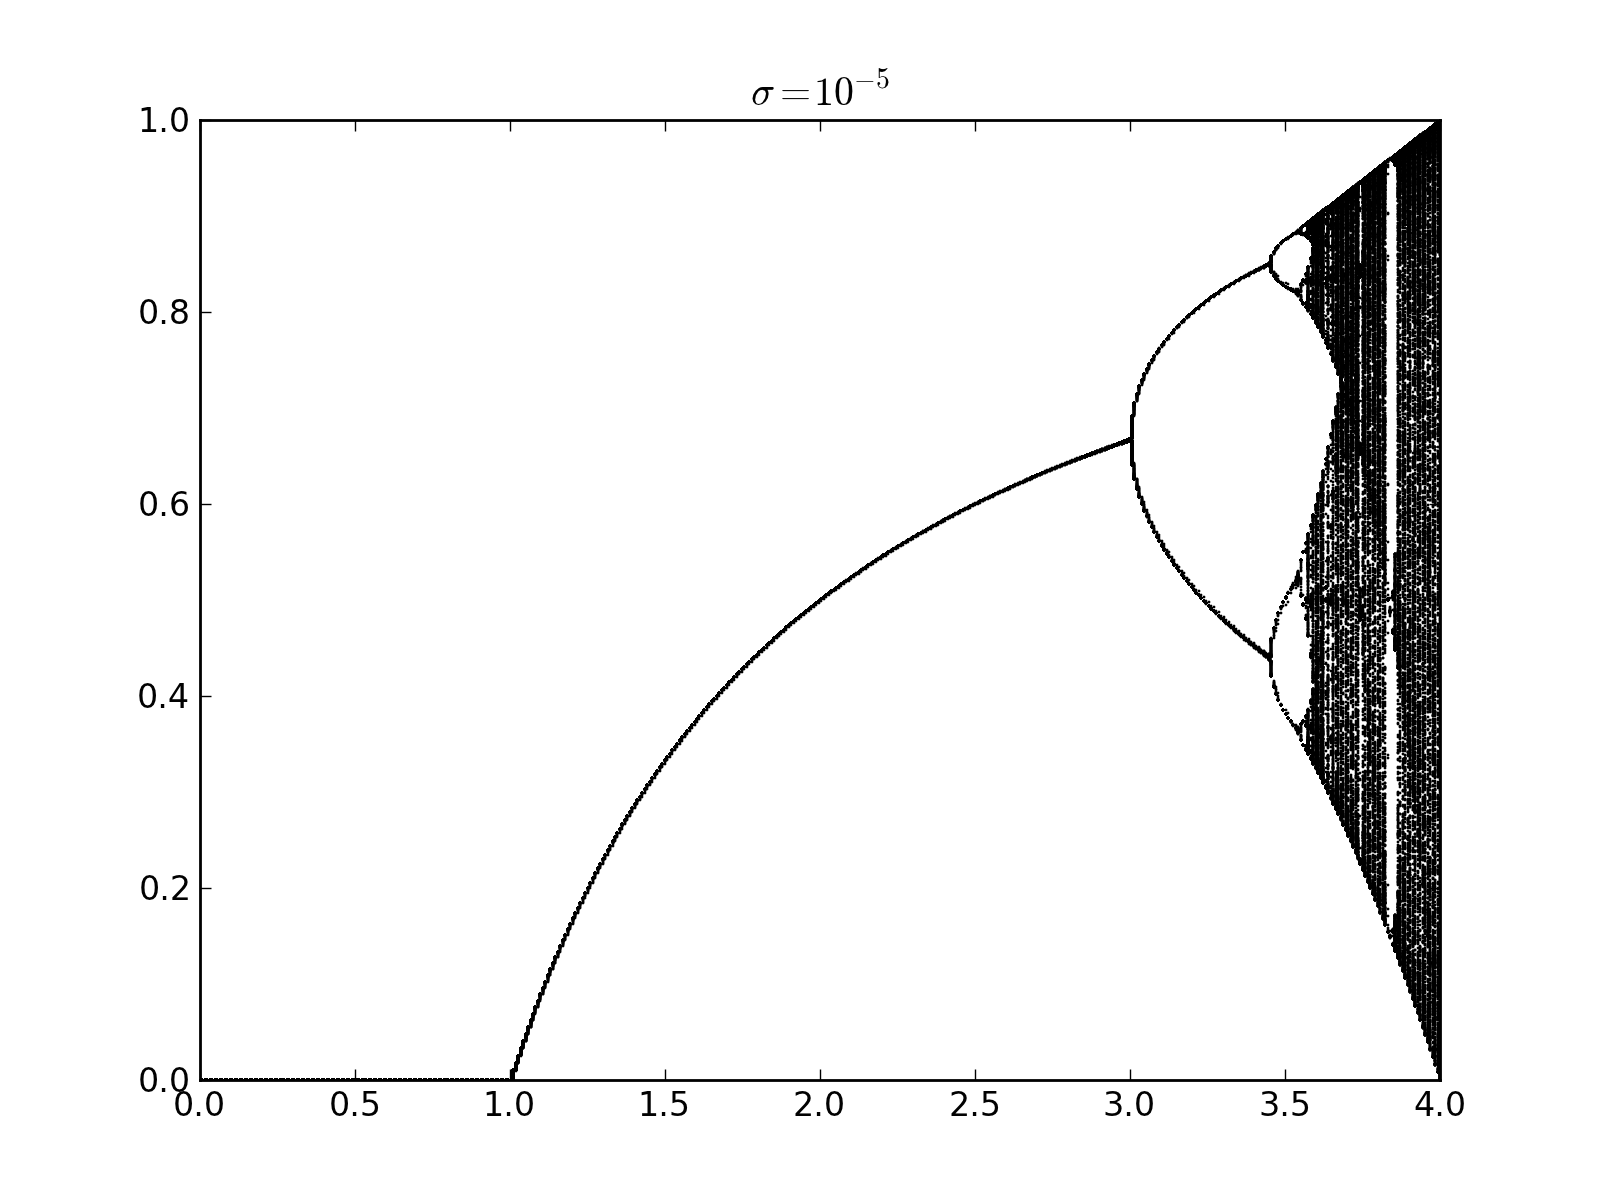 Logistic Map With Additive Noise Usage Of Railgunem